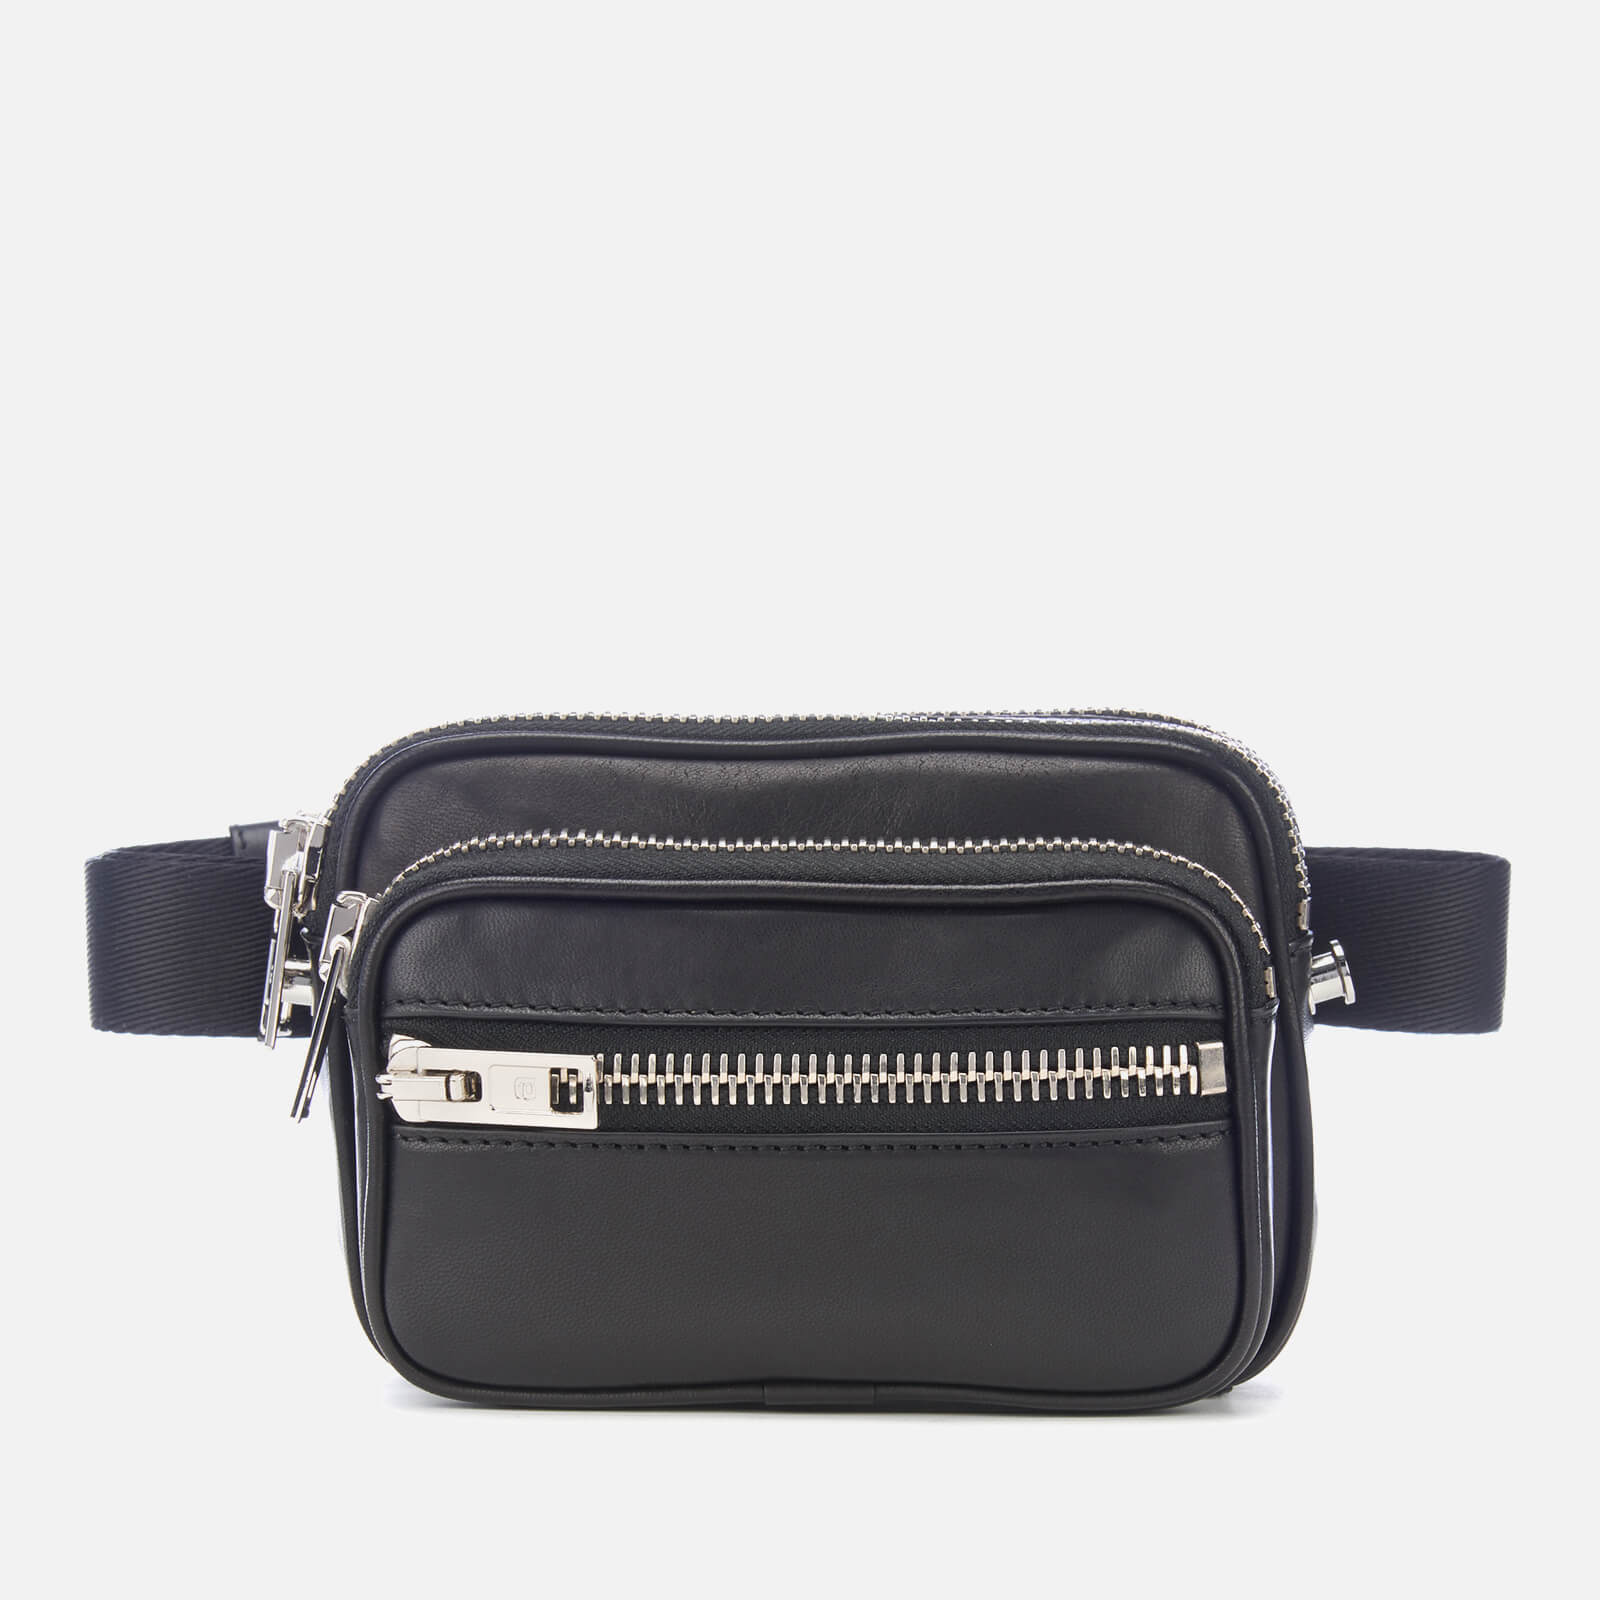 Alexander Wang Women s Attica Soft Belt Bag - Black - Free UK Delivery over  £50